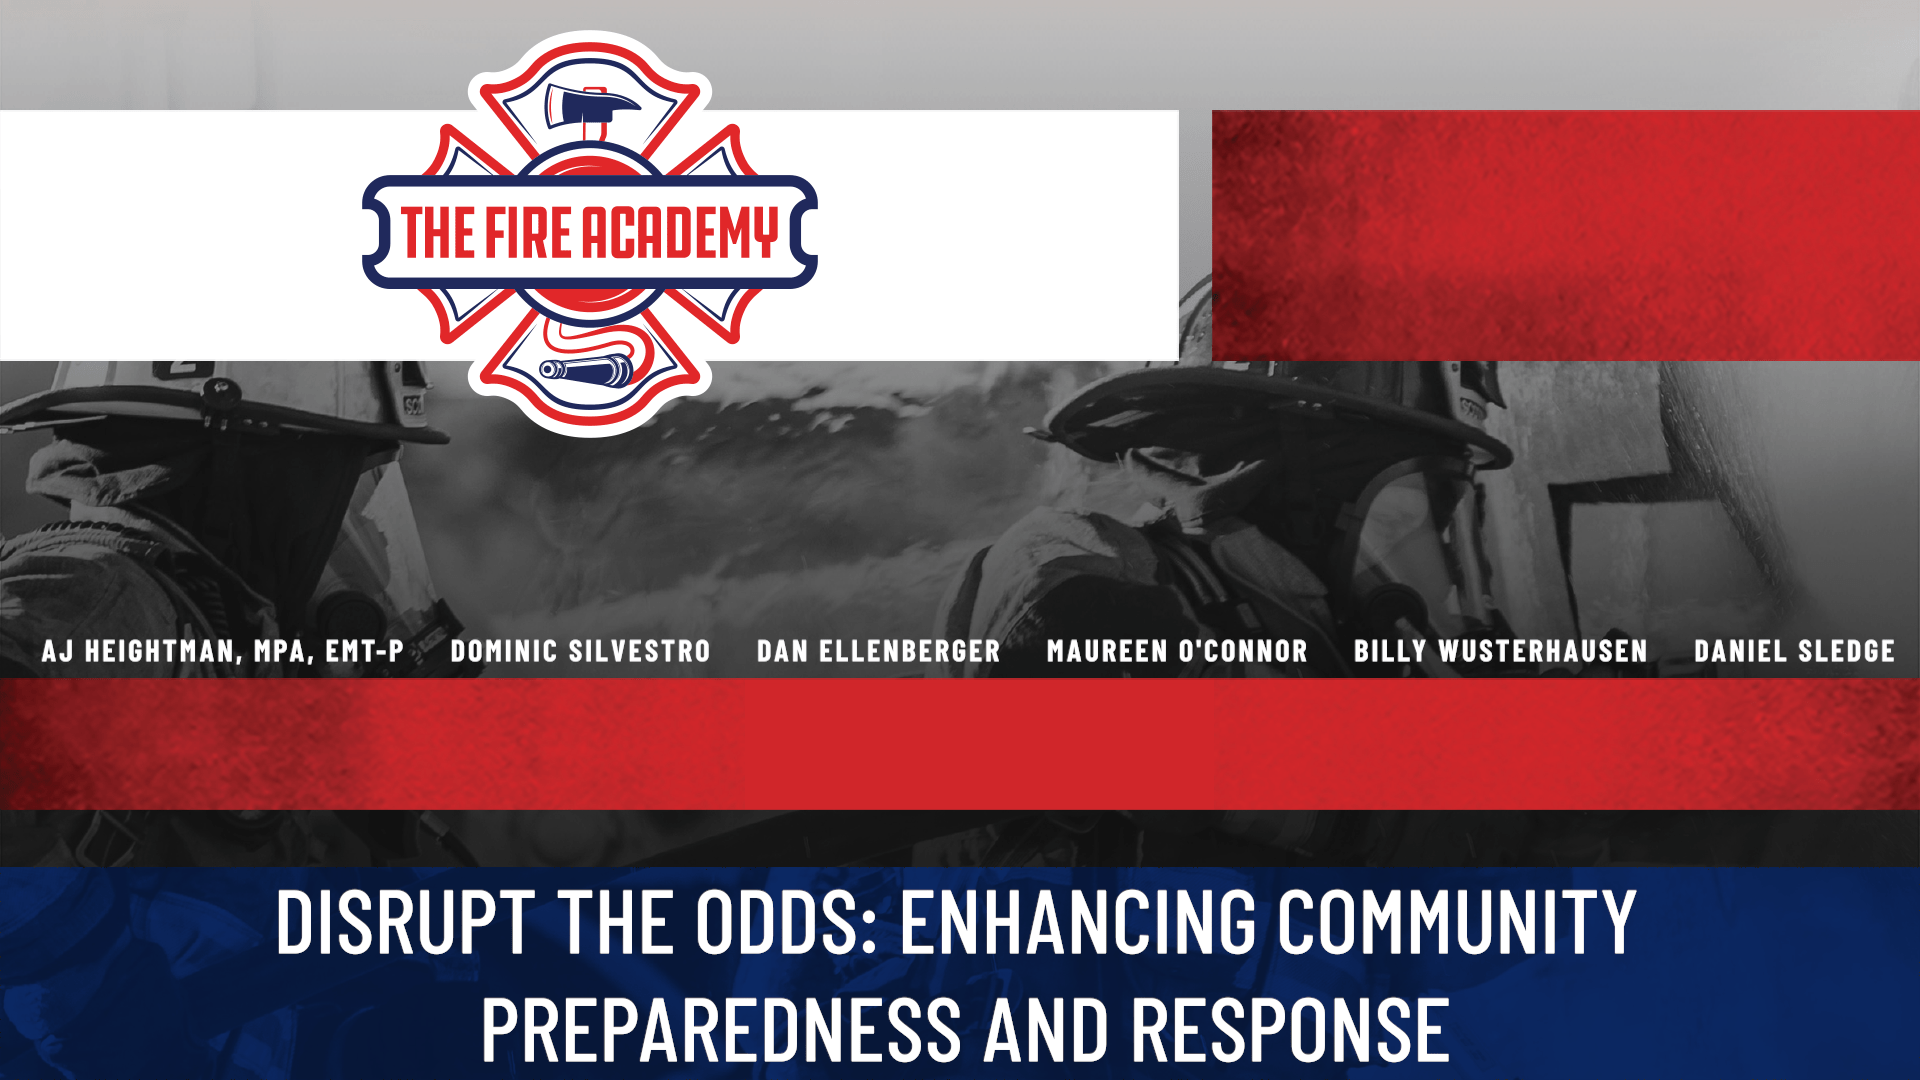 Disrupt the Odds: Enhancing Community Preparedness and Response